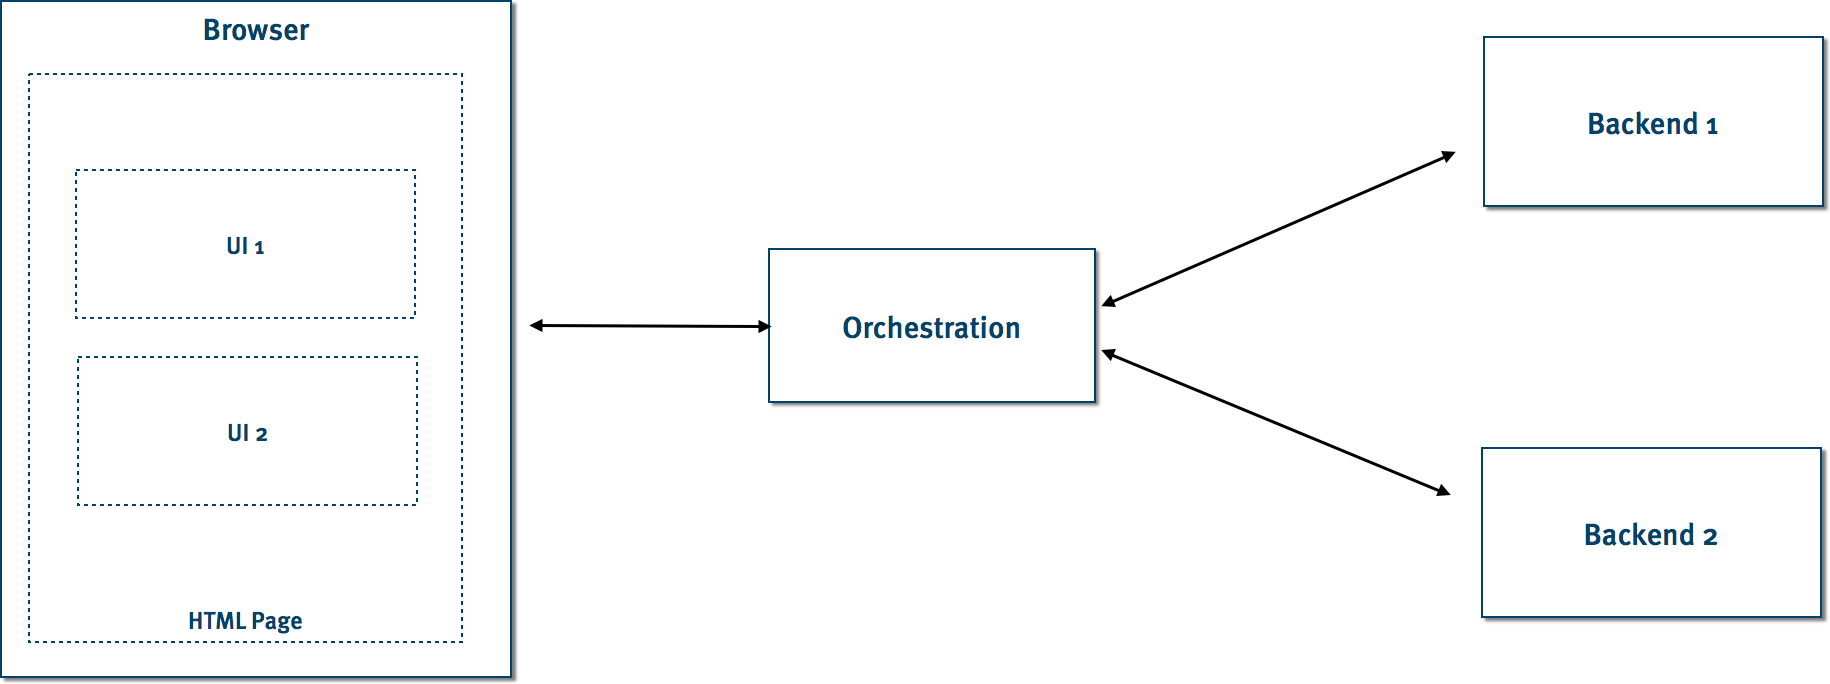 Integration via a server-side orchestration service